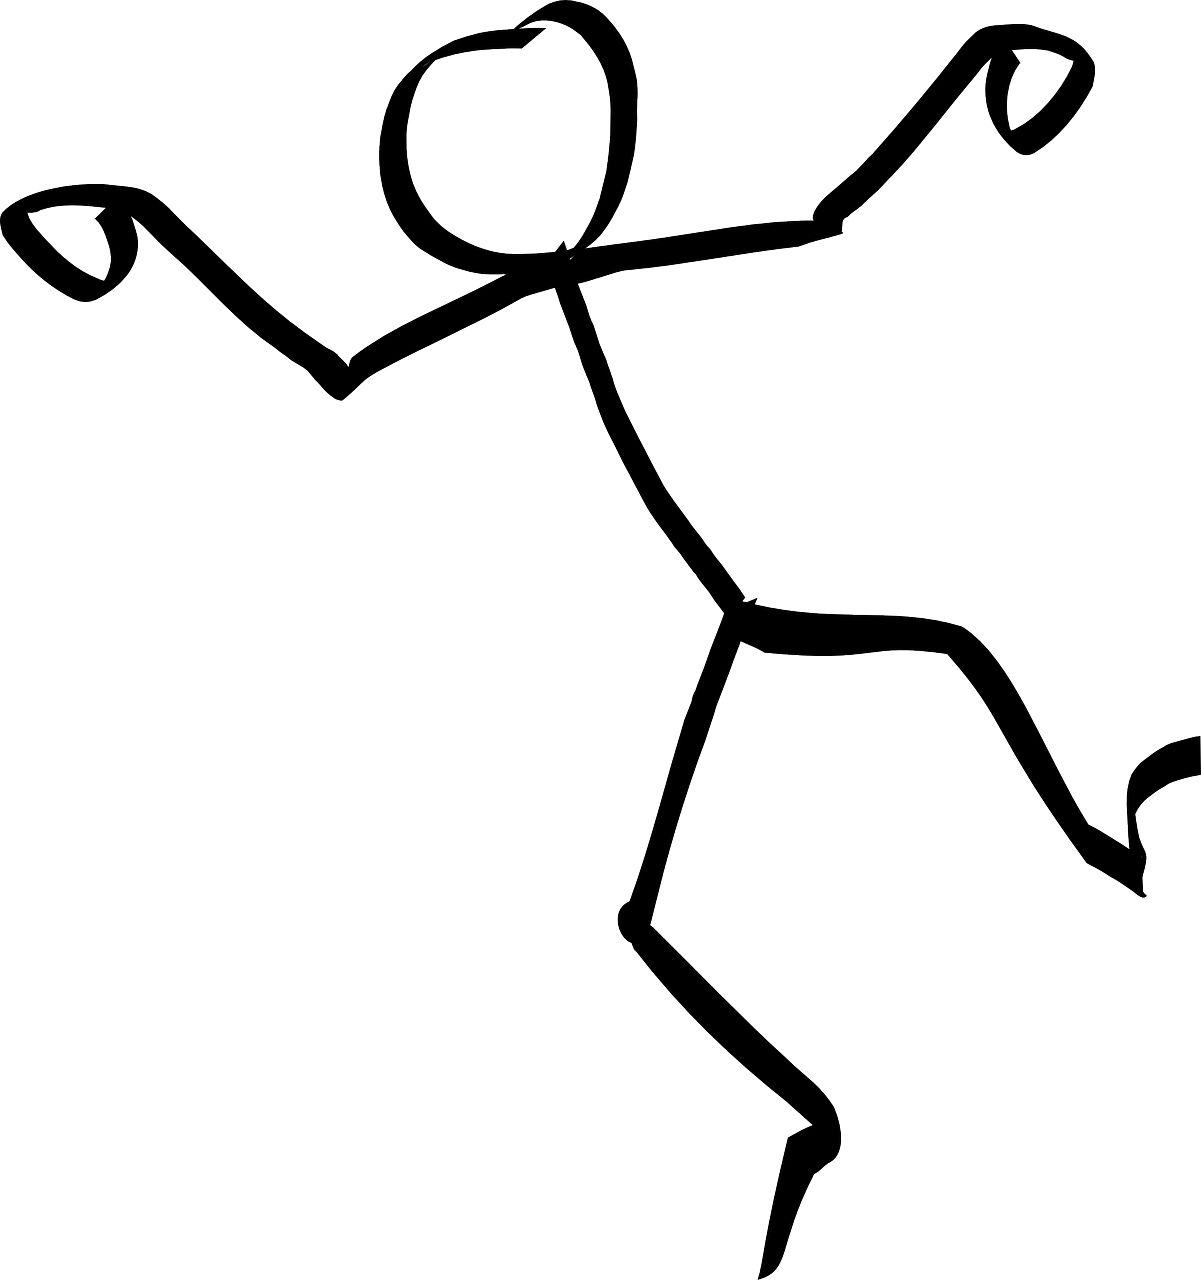 PNG HD Of Stick Figures - 130059